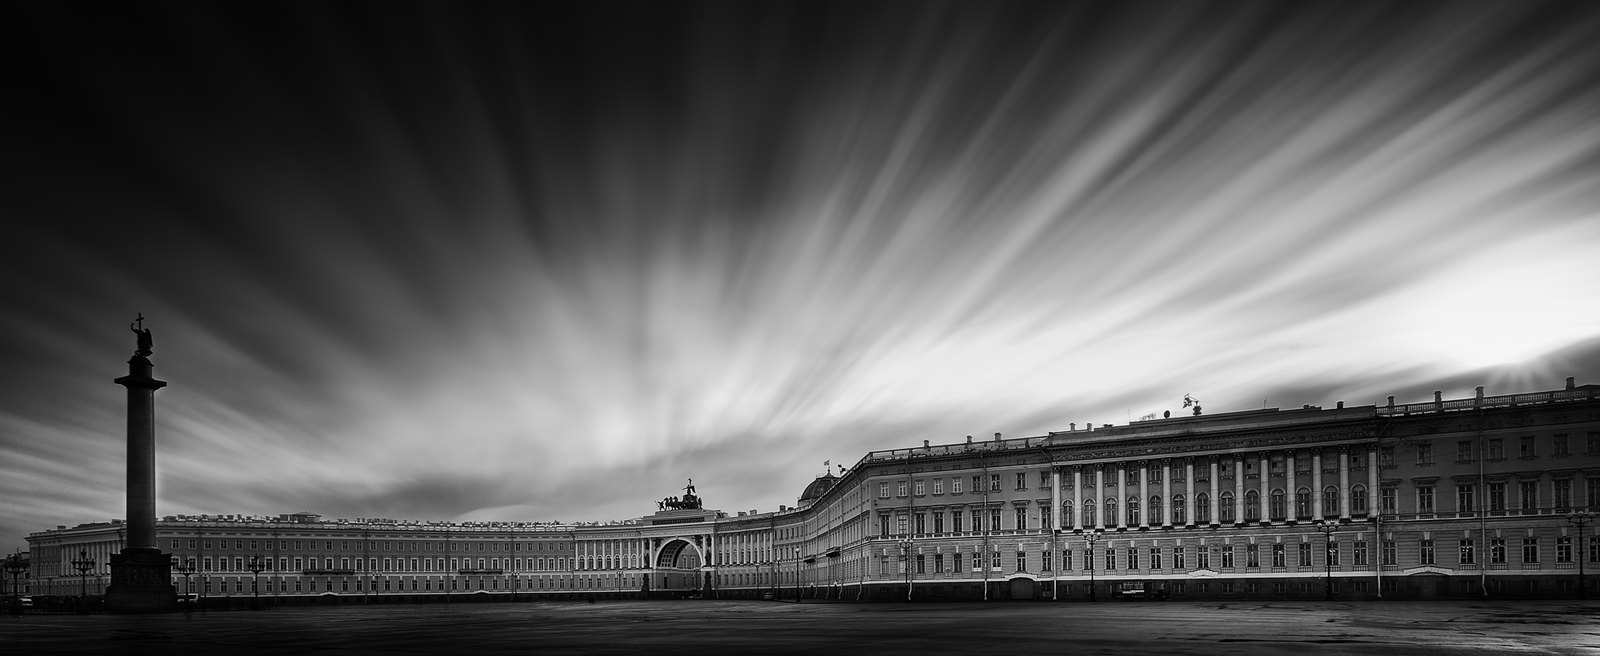 St Petersburg - Palace square